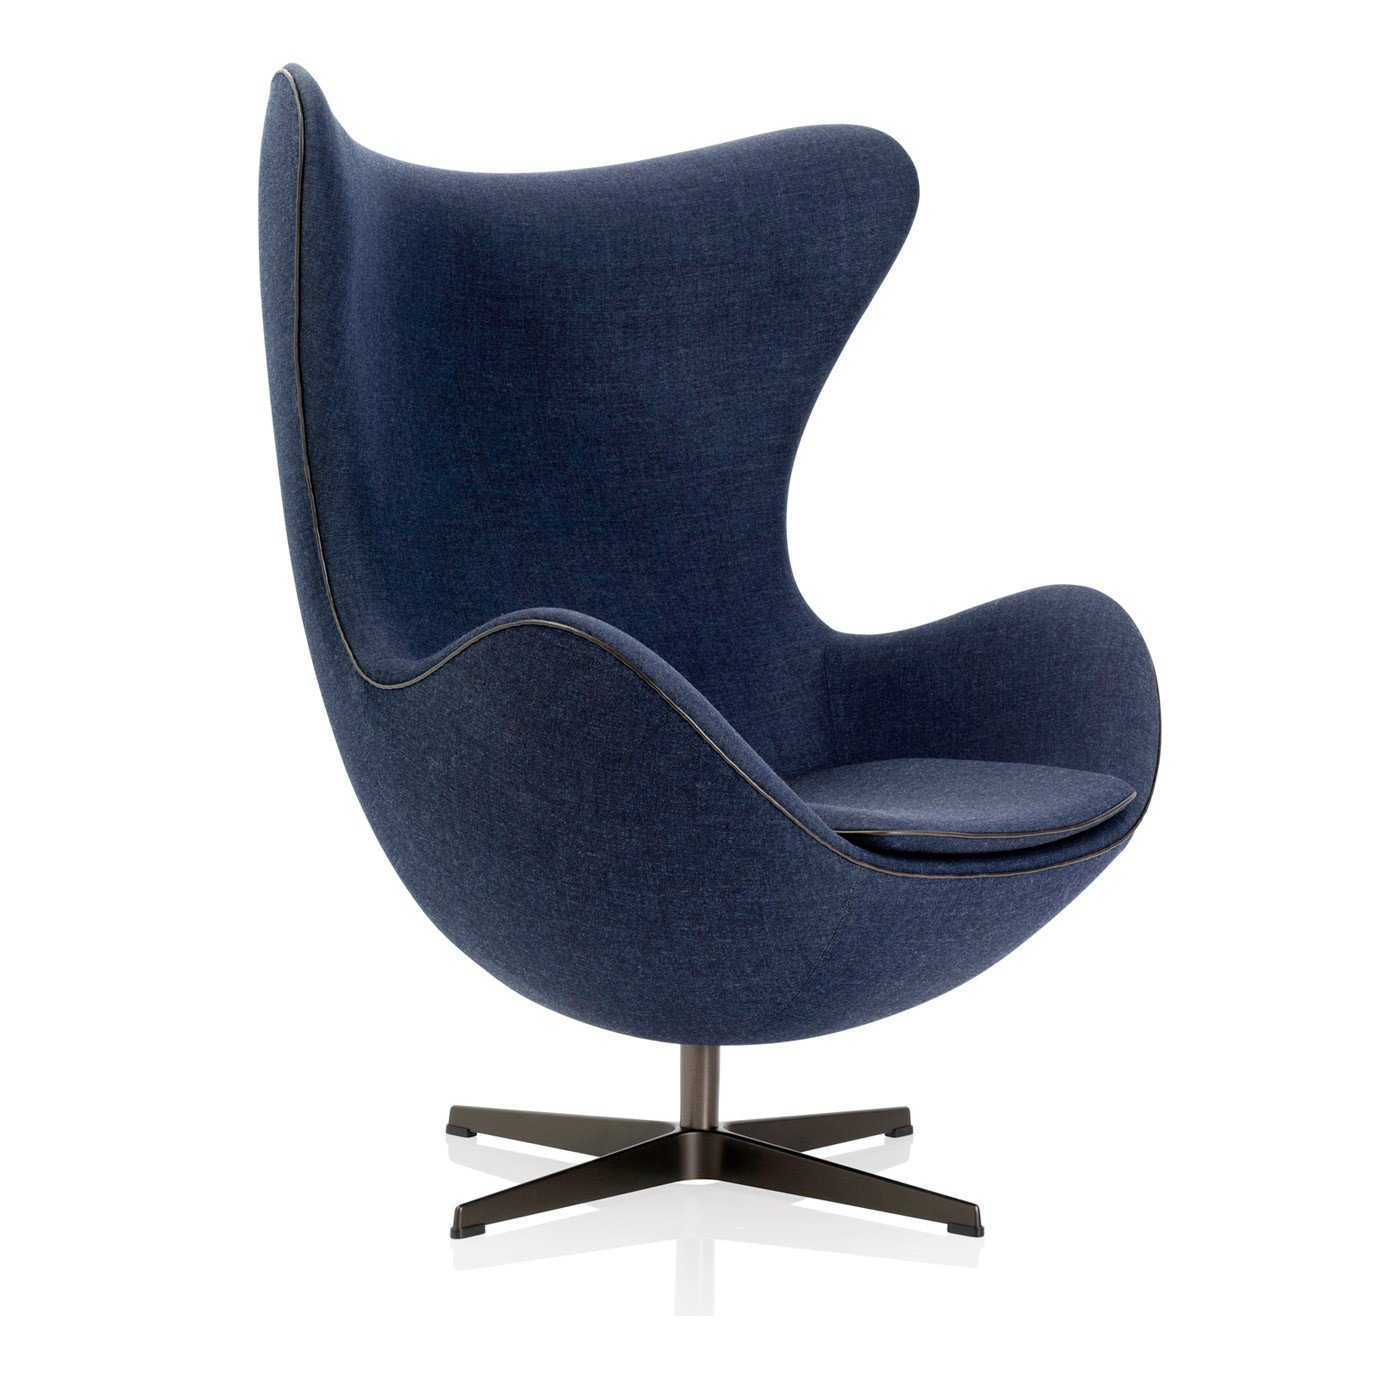 Original Arne Jacobson Egg Chair reproduction furniture